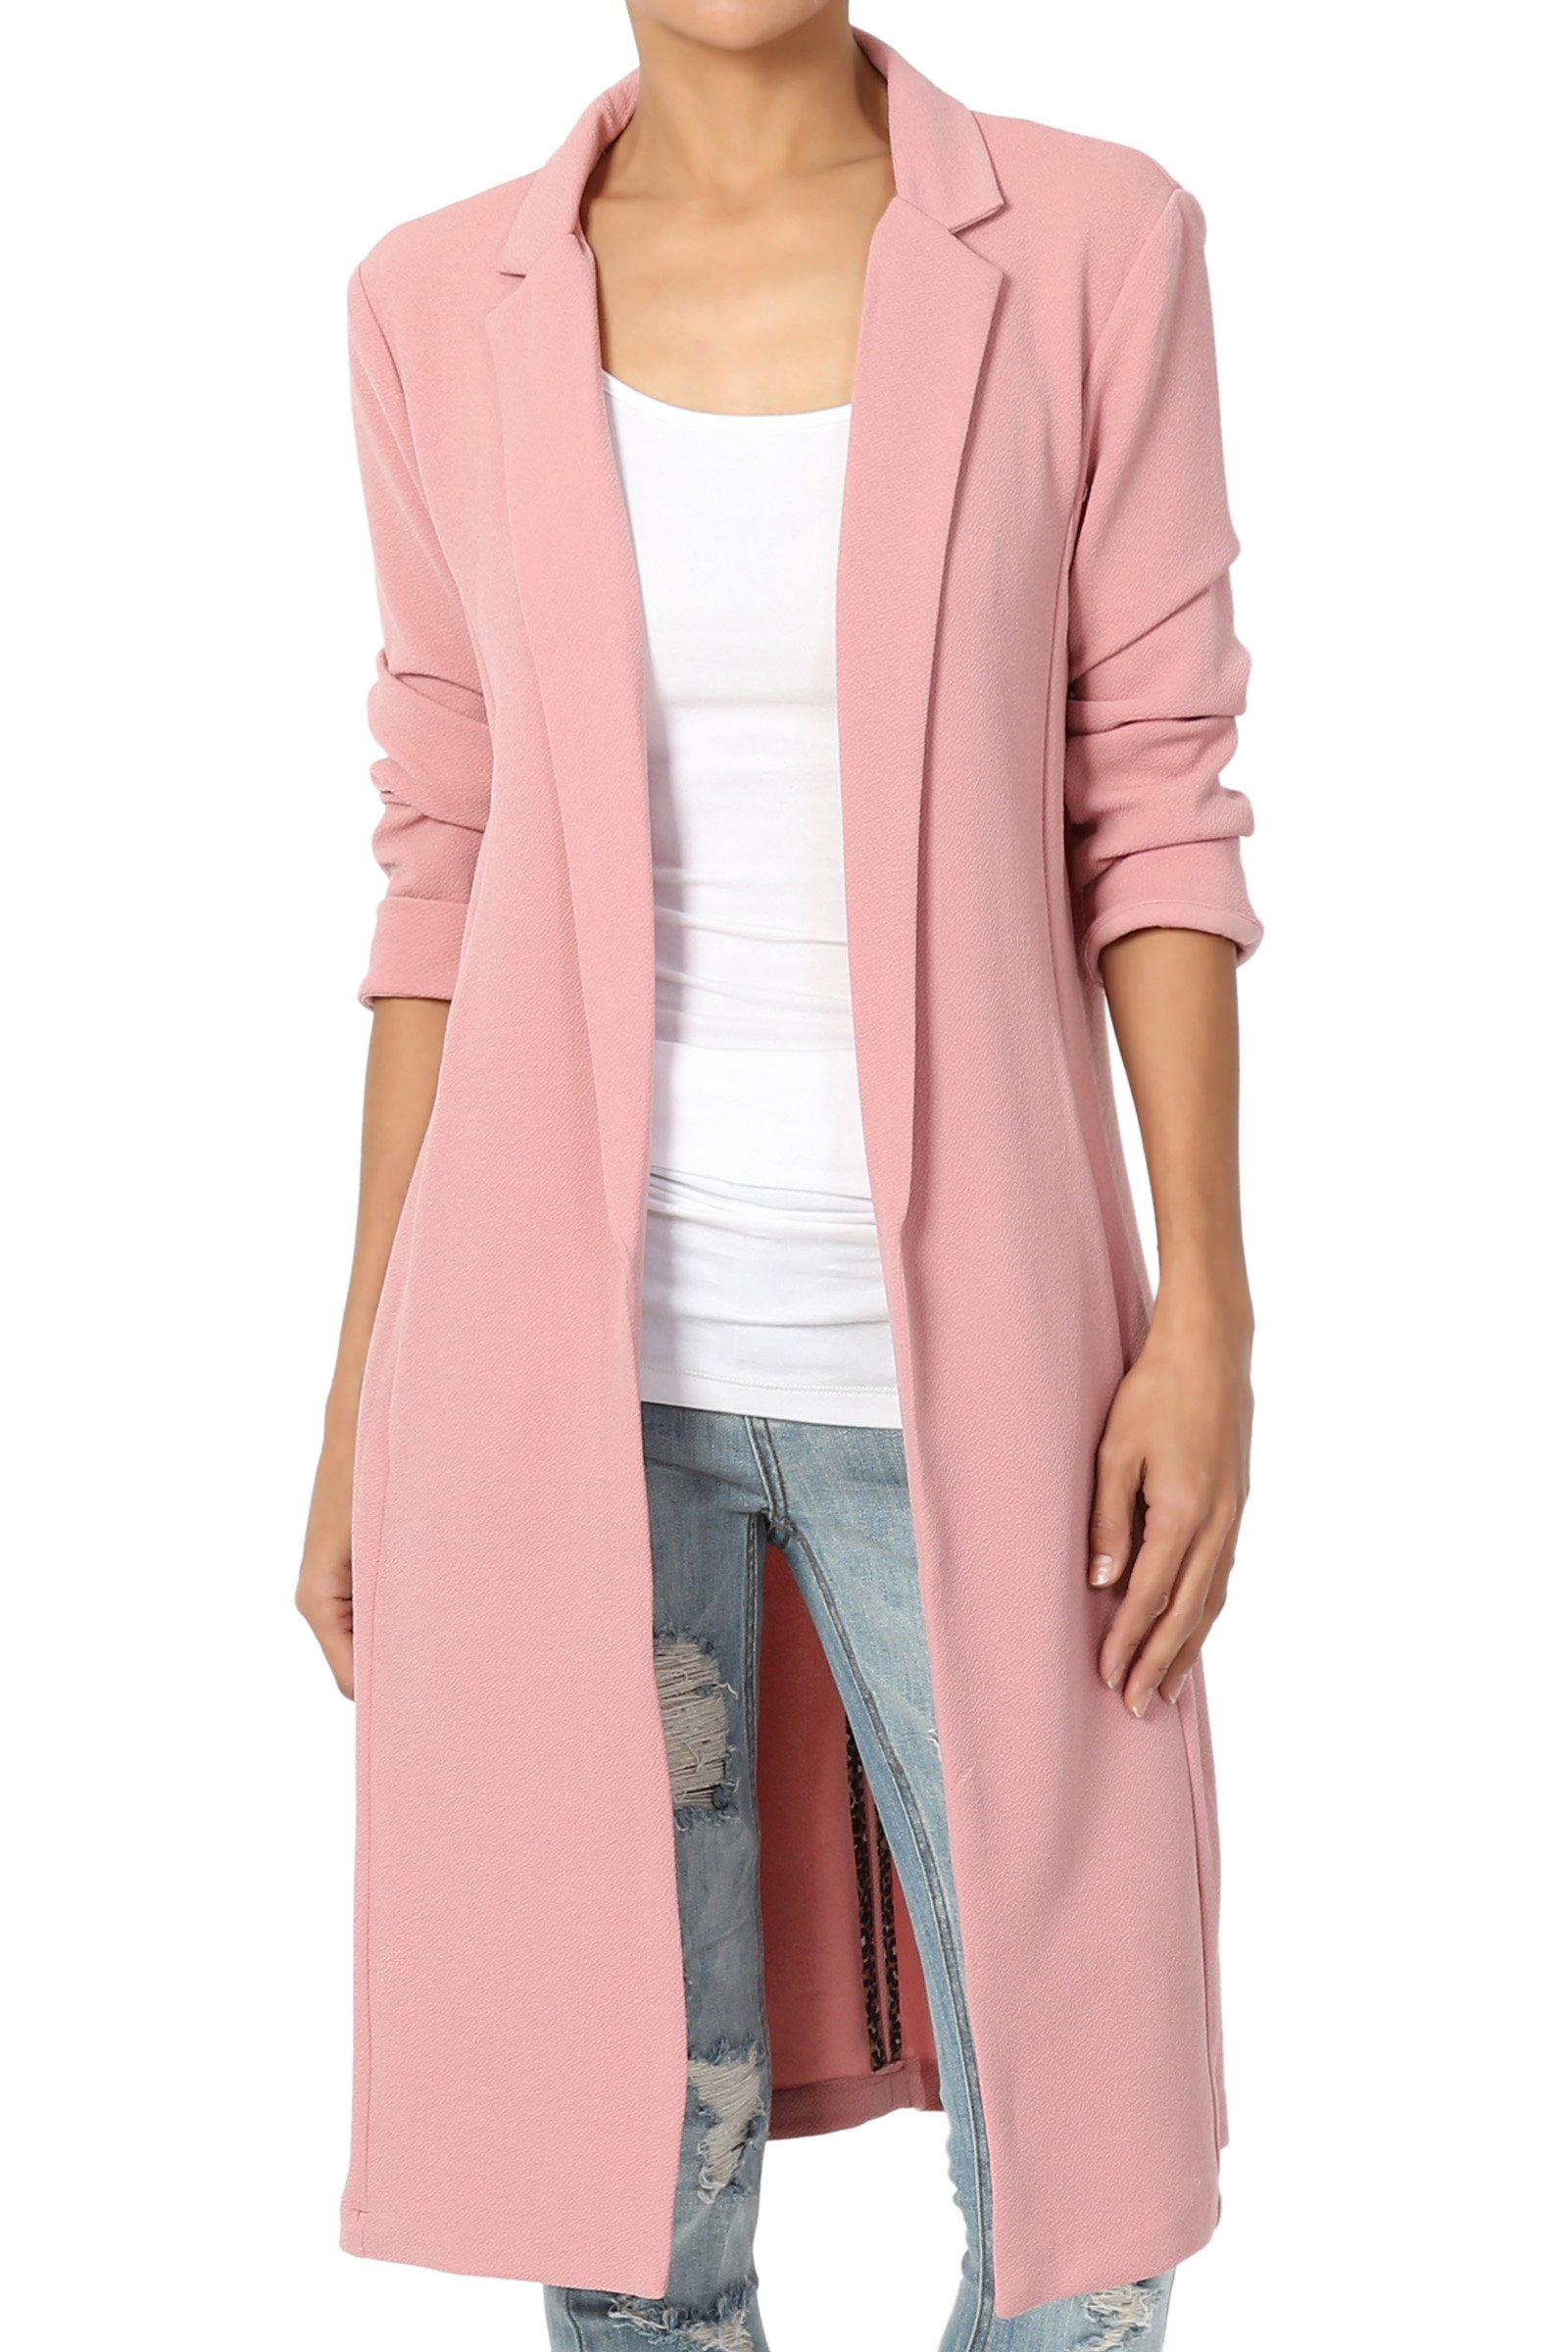 TheMogan Junior's Young Contemporary Layer Longline Jacket Dusty Rose L